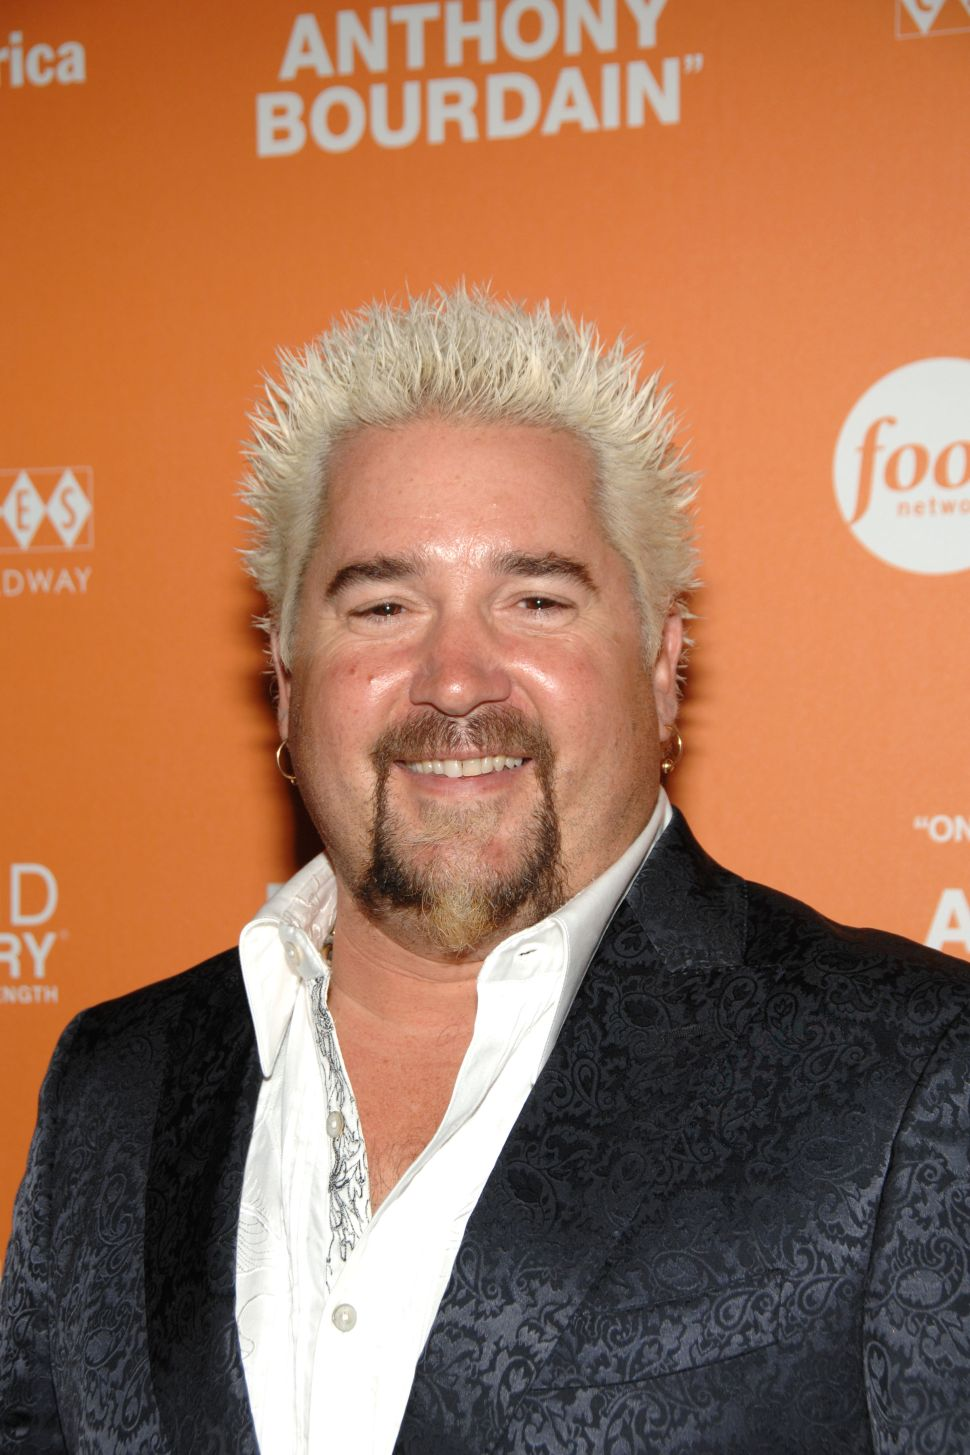 Guy Fieri to Punish Atlantic City With New Restaurant